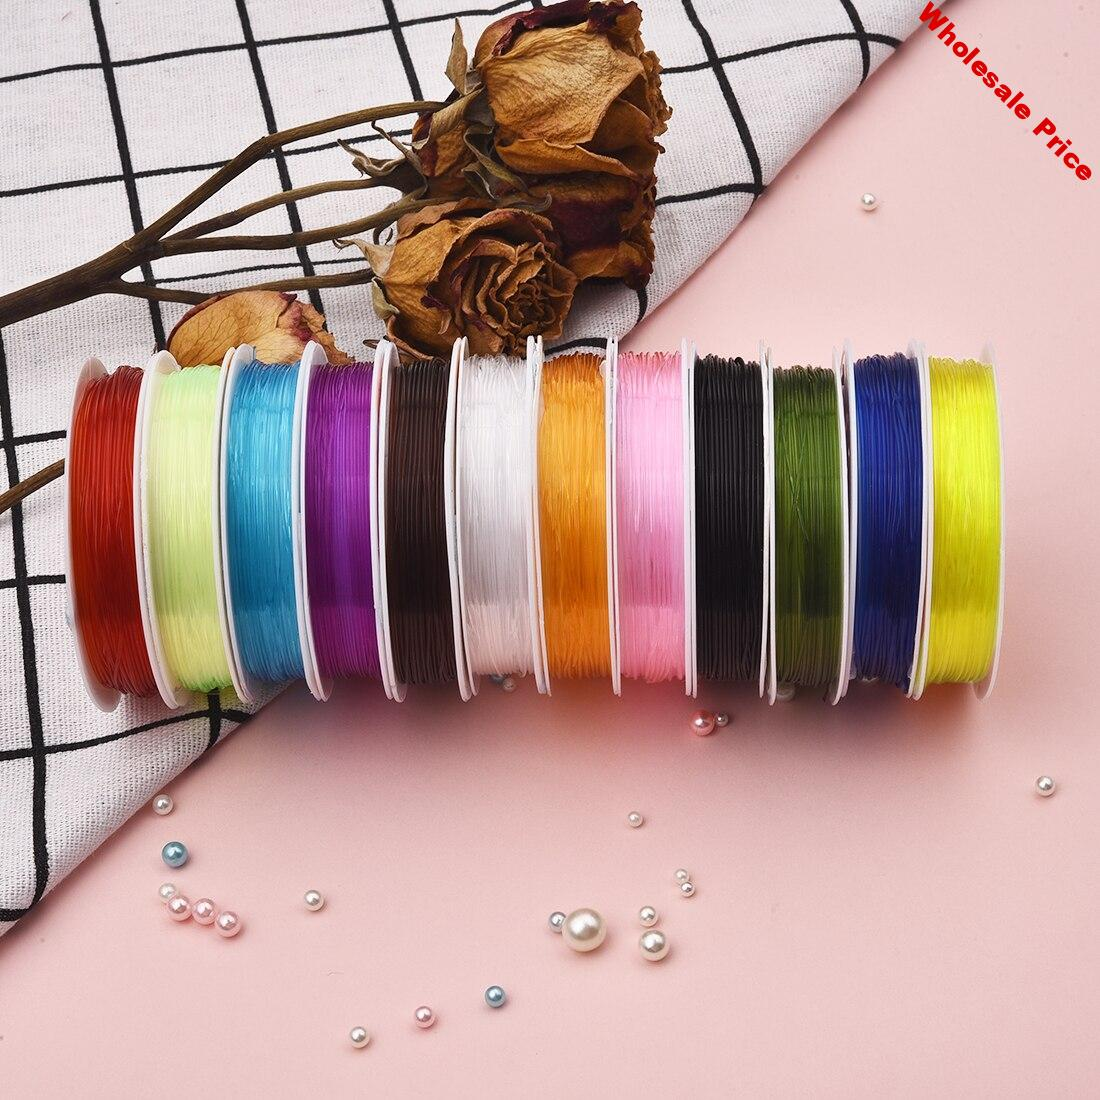 12 Rolls 0.8/1mm Elastic Crystal Cord Rope  Beading Thread  String Wire For DIY Jewelry Making Beads Bracelet Necklace